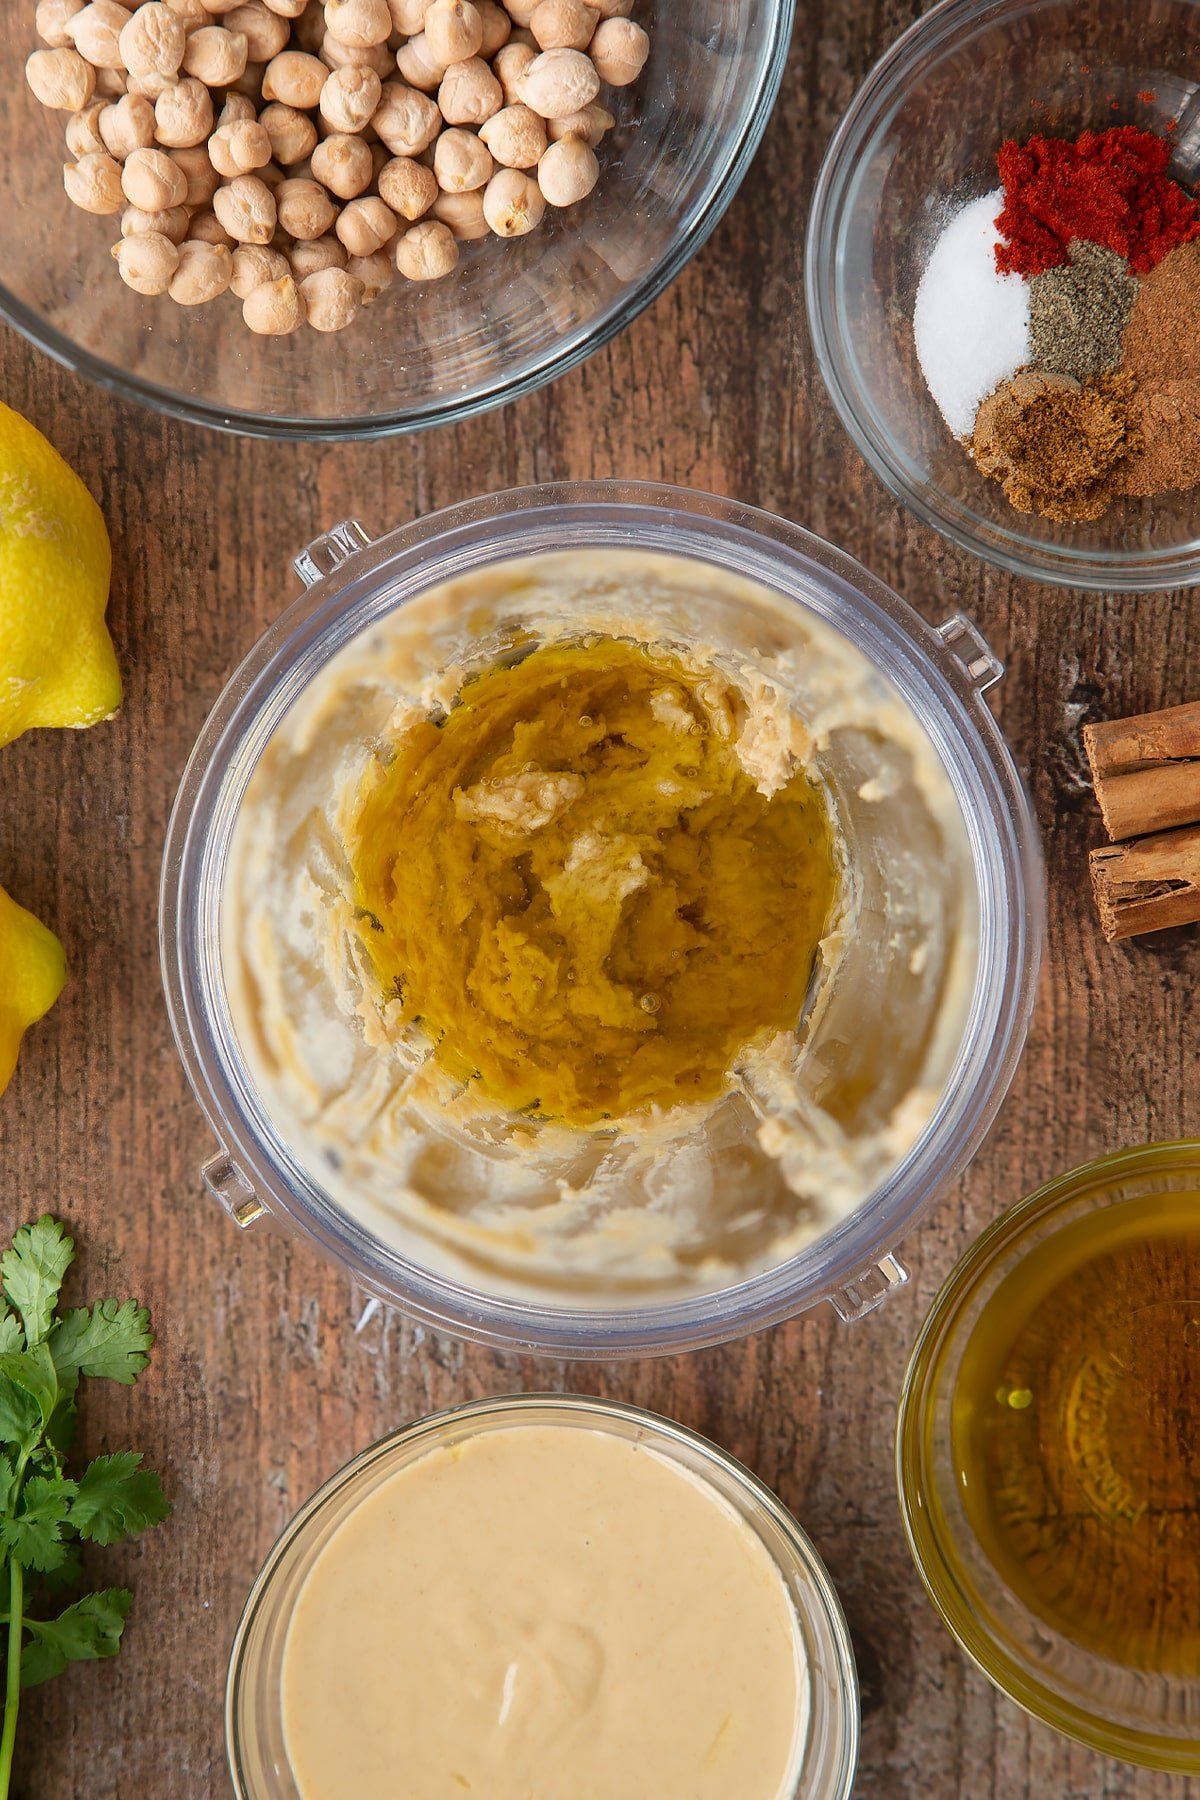 Tahini, lemon juice and oil in a small blender bowl. Ingredients to make cinnamon hummus surround the bowl.